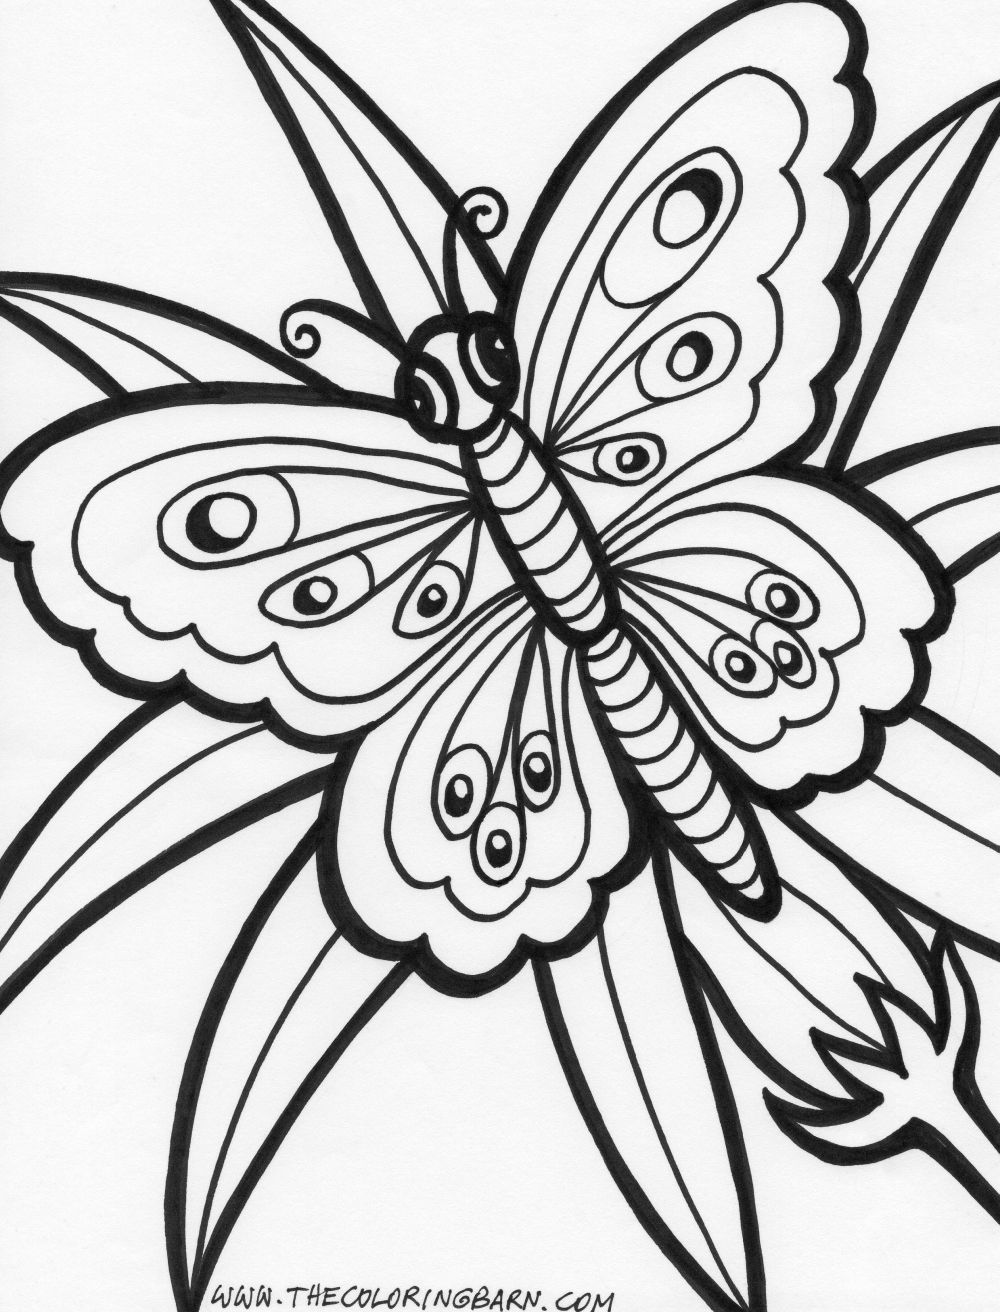 free printable flower coloring pages - summer flowers printable coloring pages 324